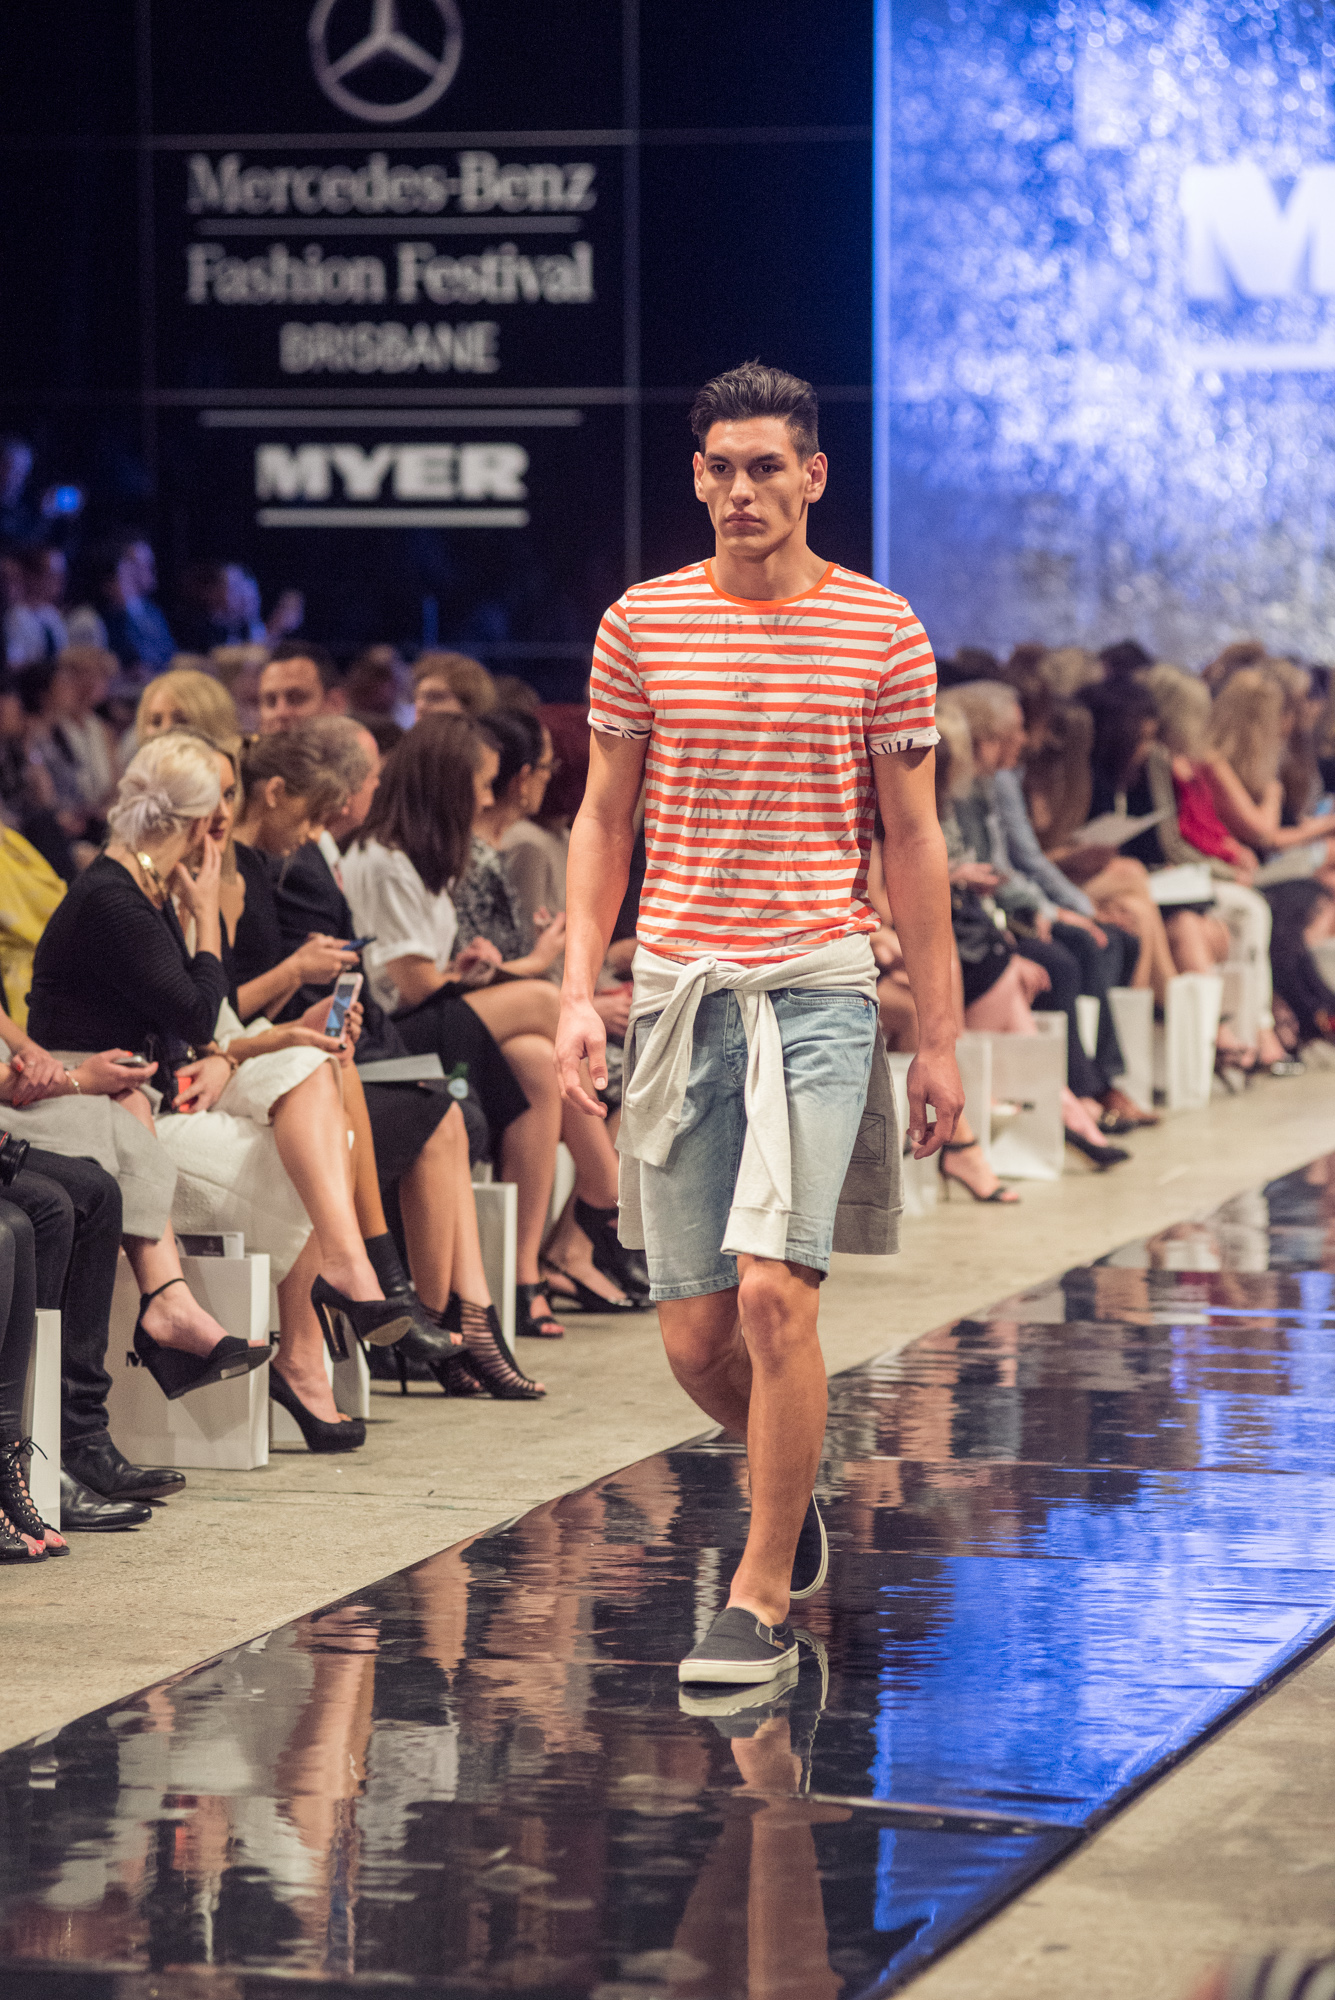 MBFF Brisbane Myer Jack & Jones